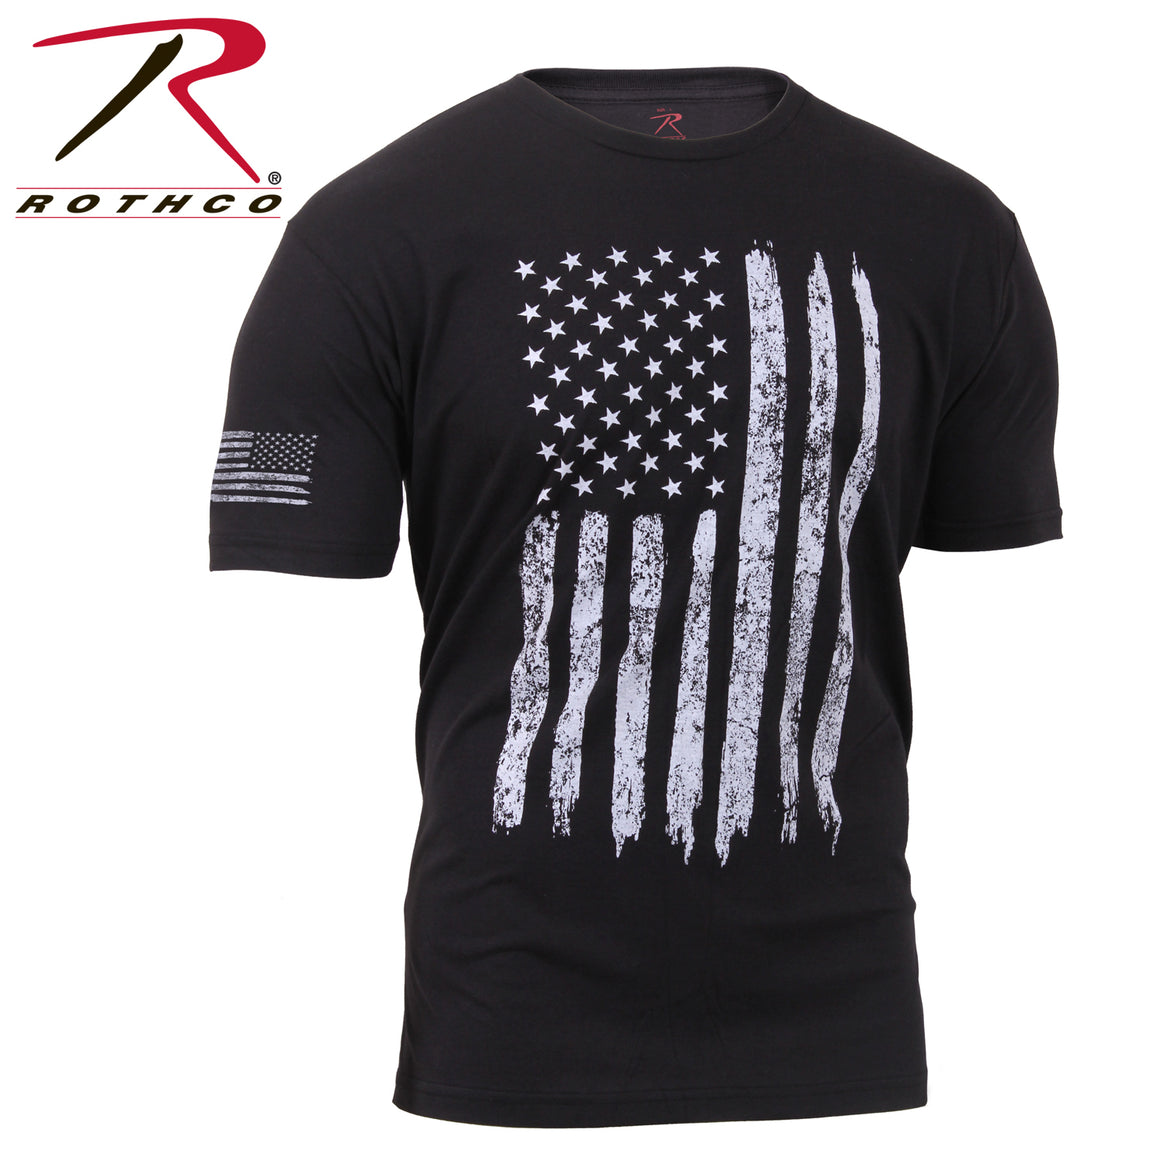 Rothco Distressed US Flag Athletic Fit T-Shirt